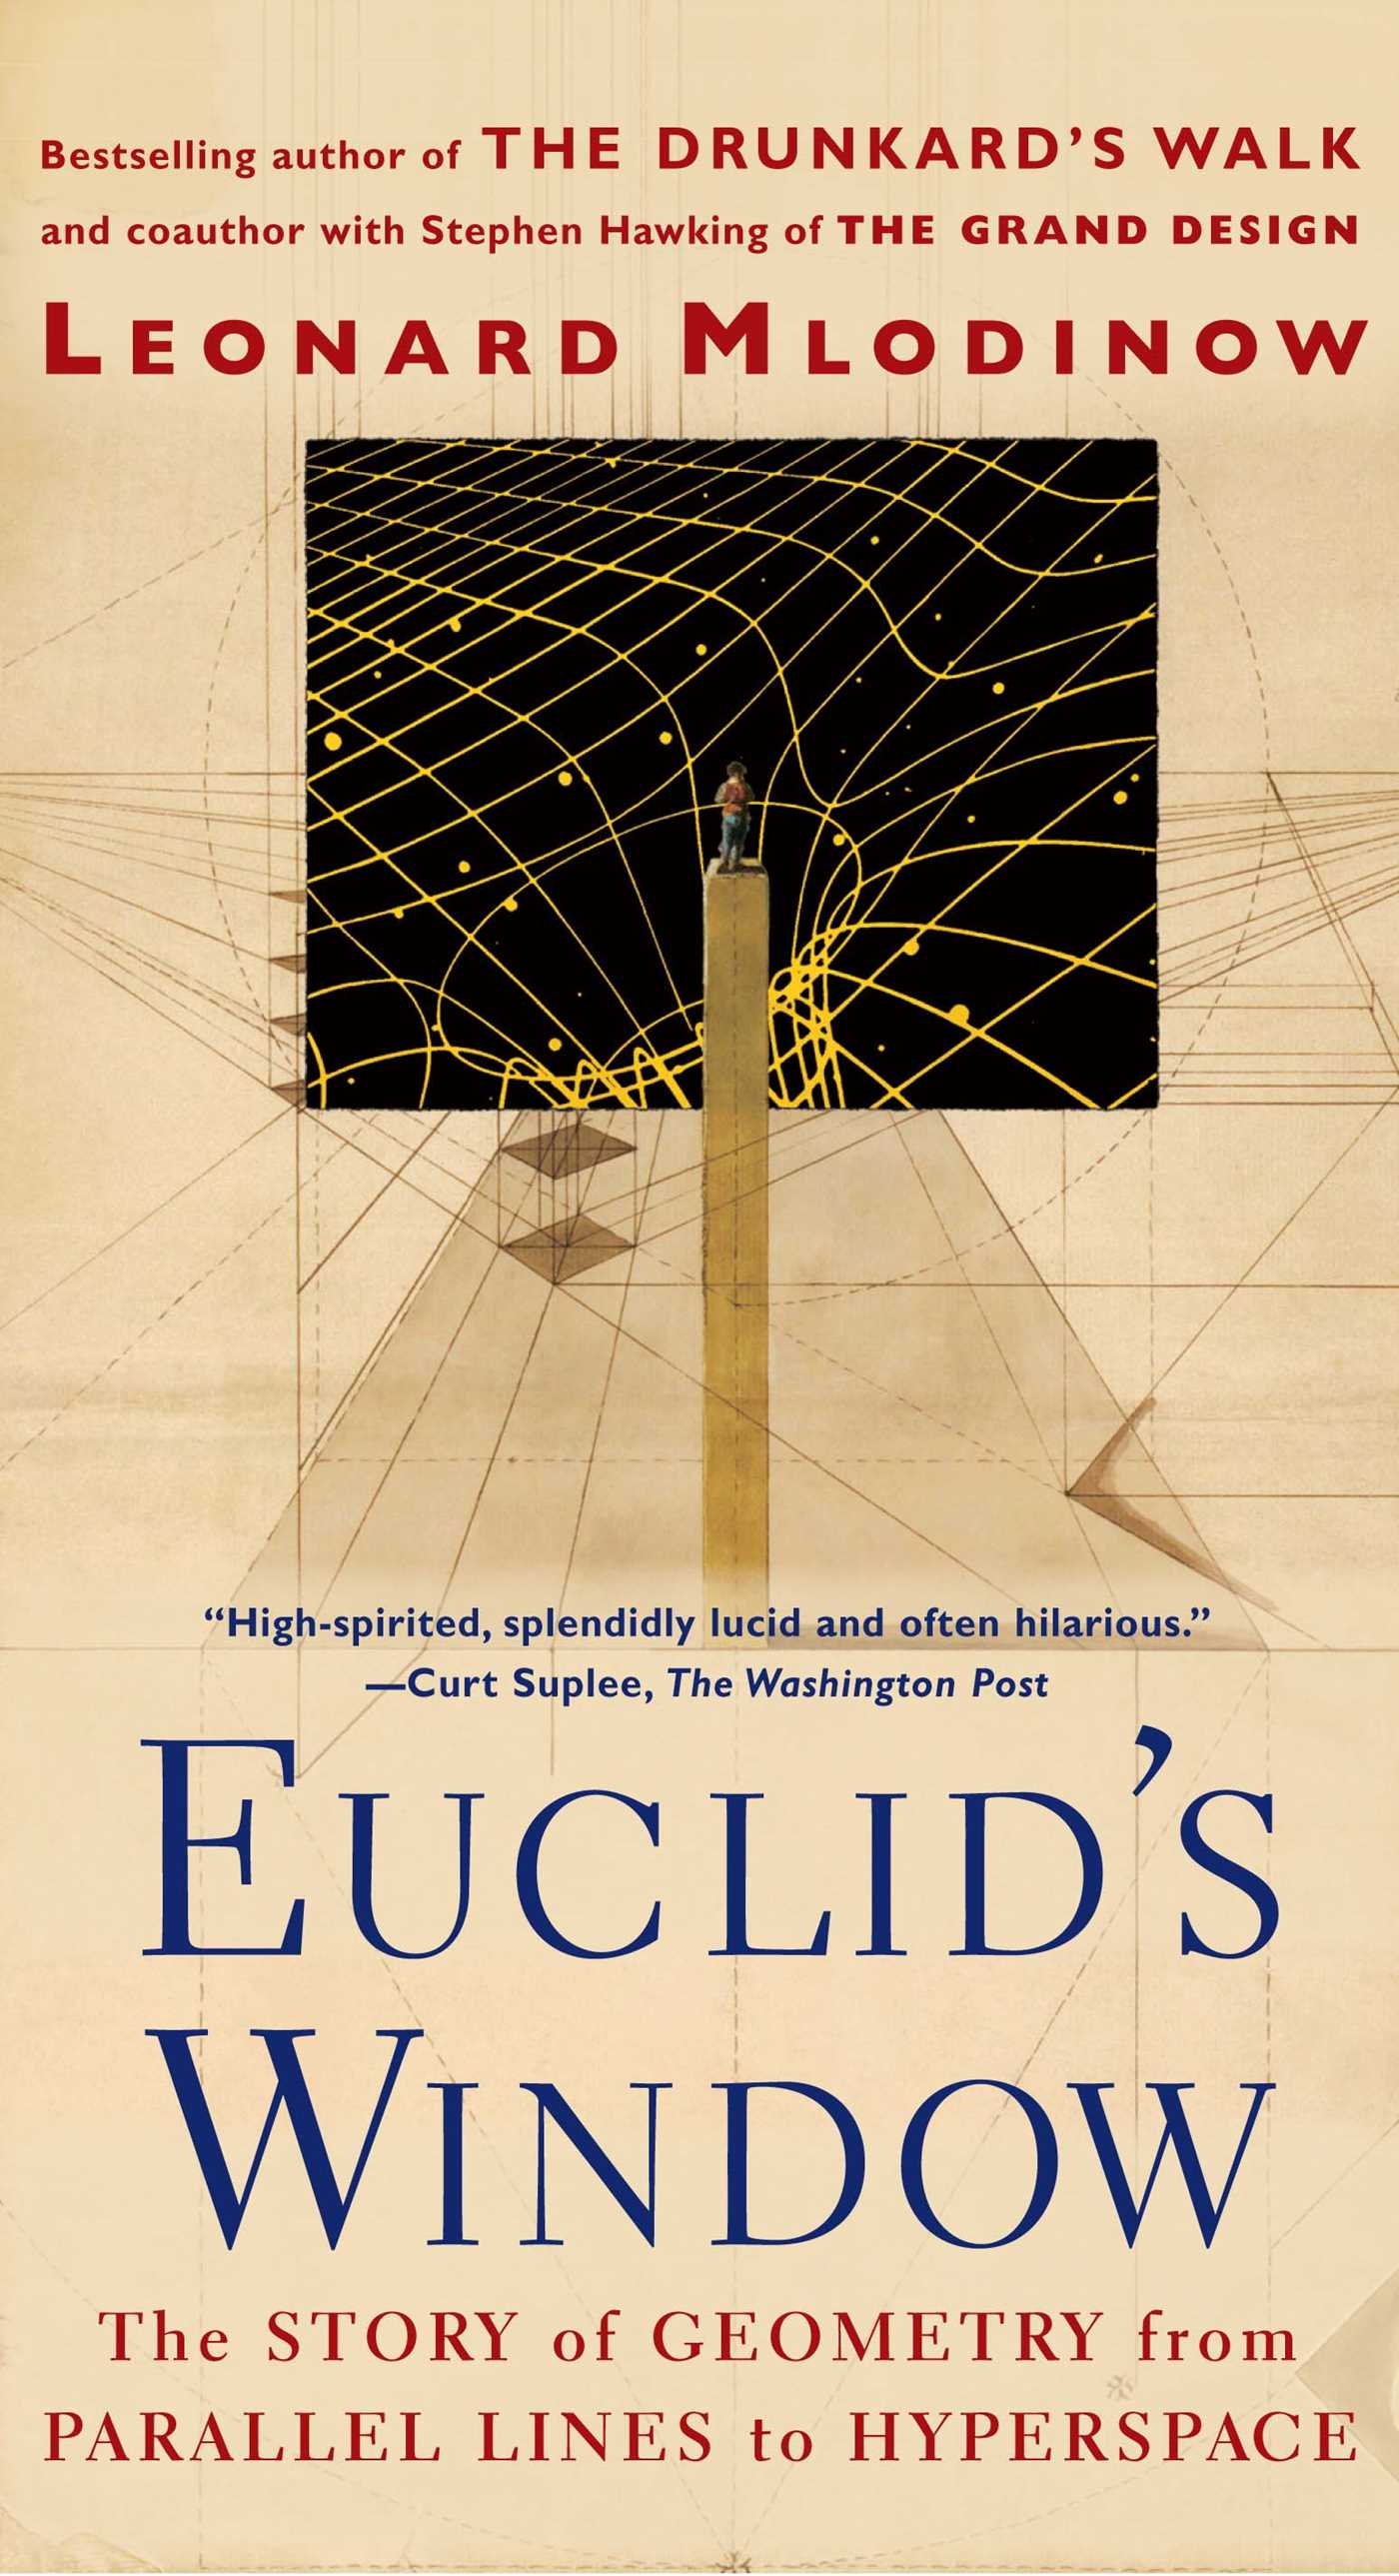 Euclids-window-9780684865249_hr